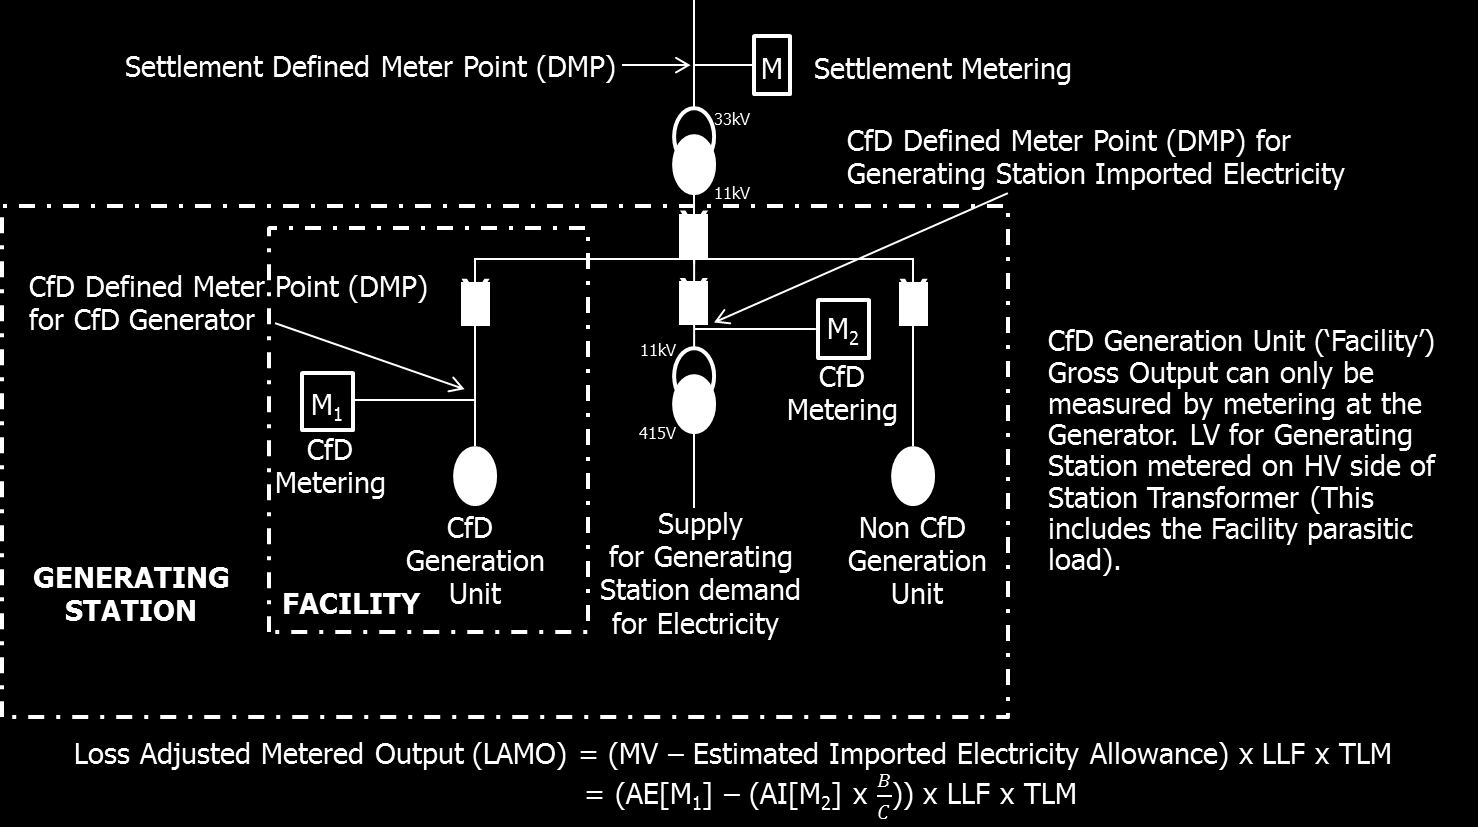 11.3 Diagram 3 Dual Scheme Facility Where B is the lesser of the Installed Capacity (MW) and the Maximum Contract Capacity (MW) of the